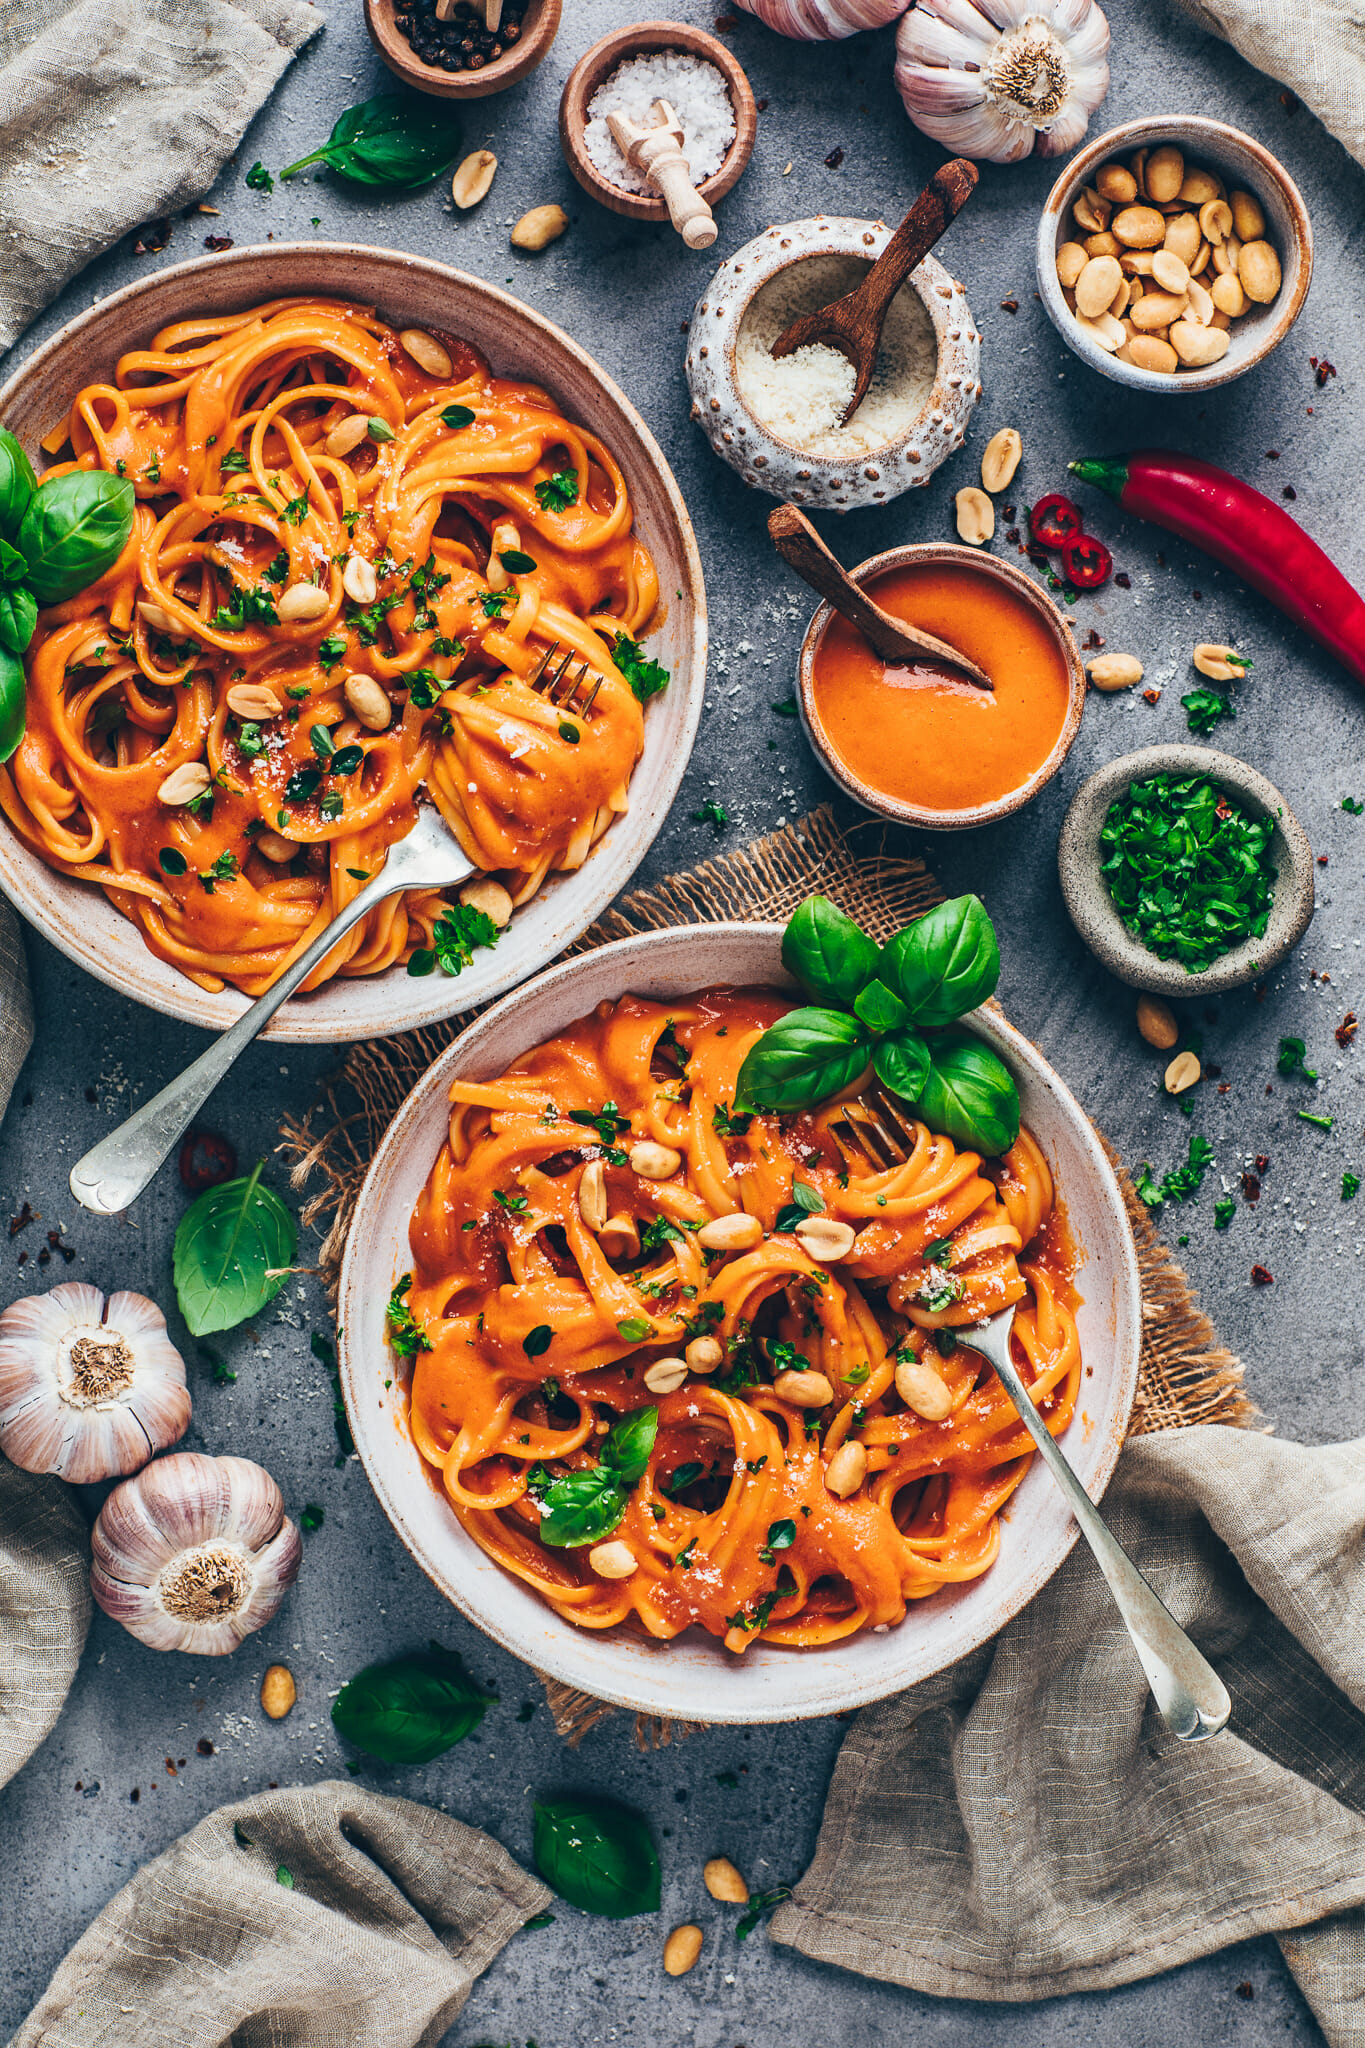 Pasta with Roasted Red Pepper Sauce, peanuts and basil (food photography)